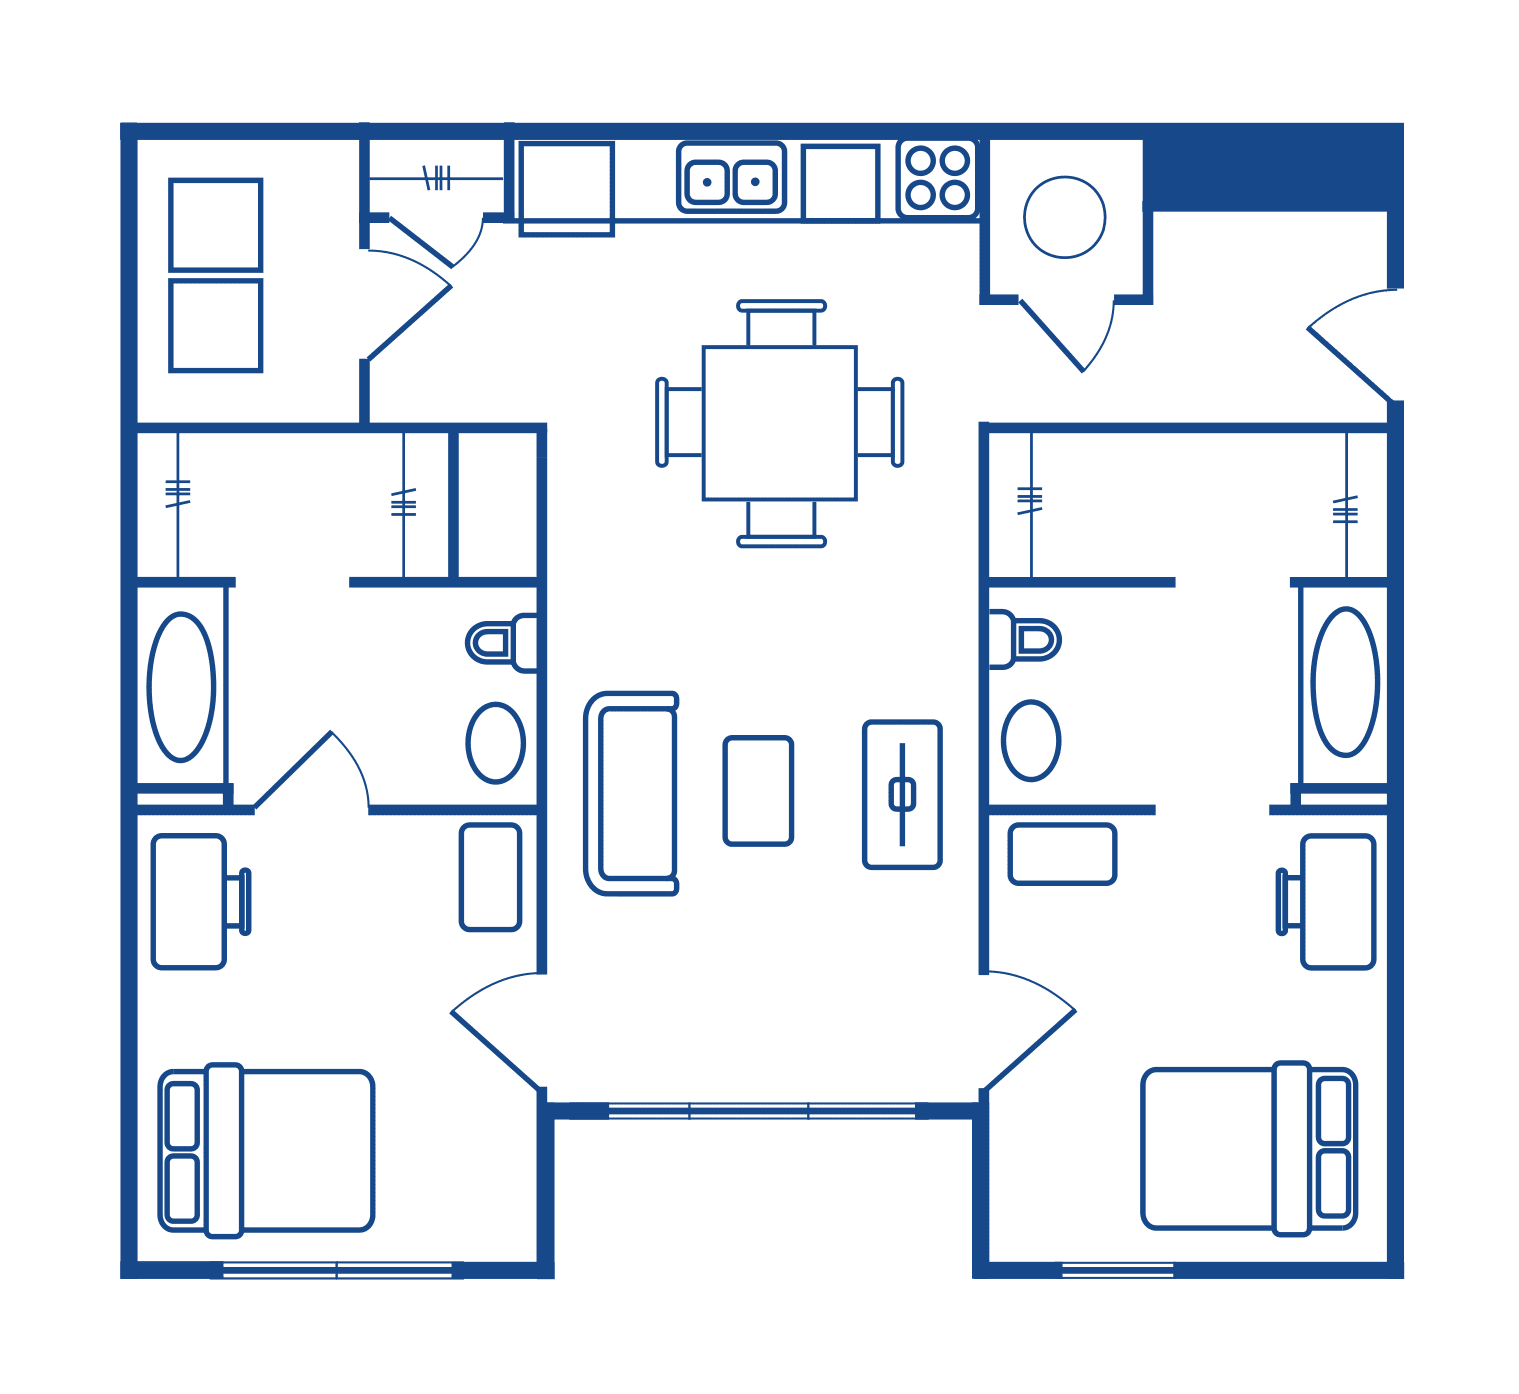 2 Bedroom & 2 Bath Apartments